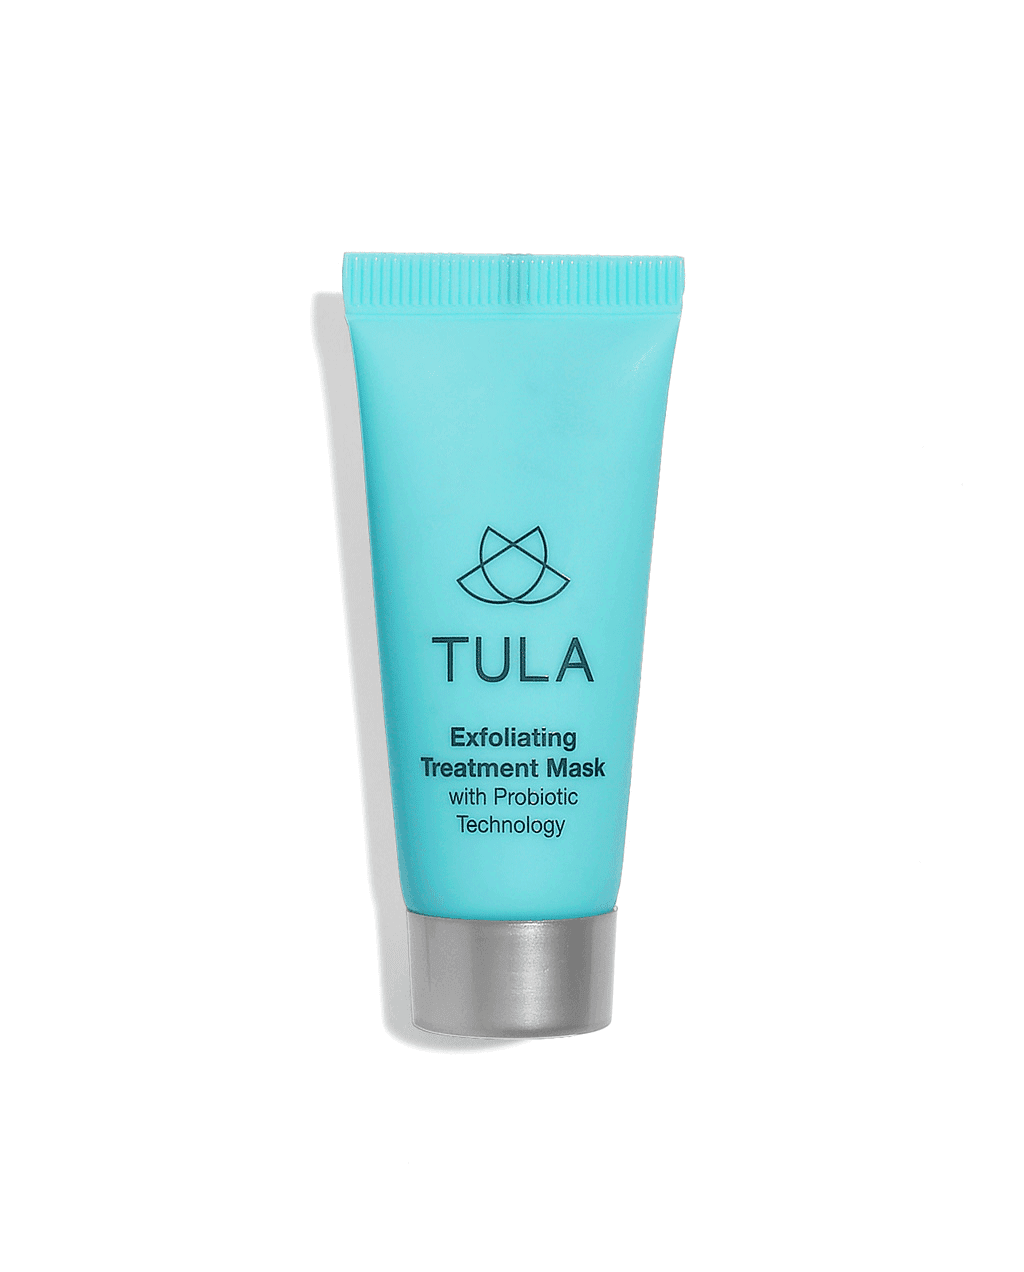 Travel Size Exfoliating Treatment Mask